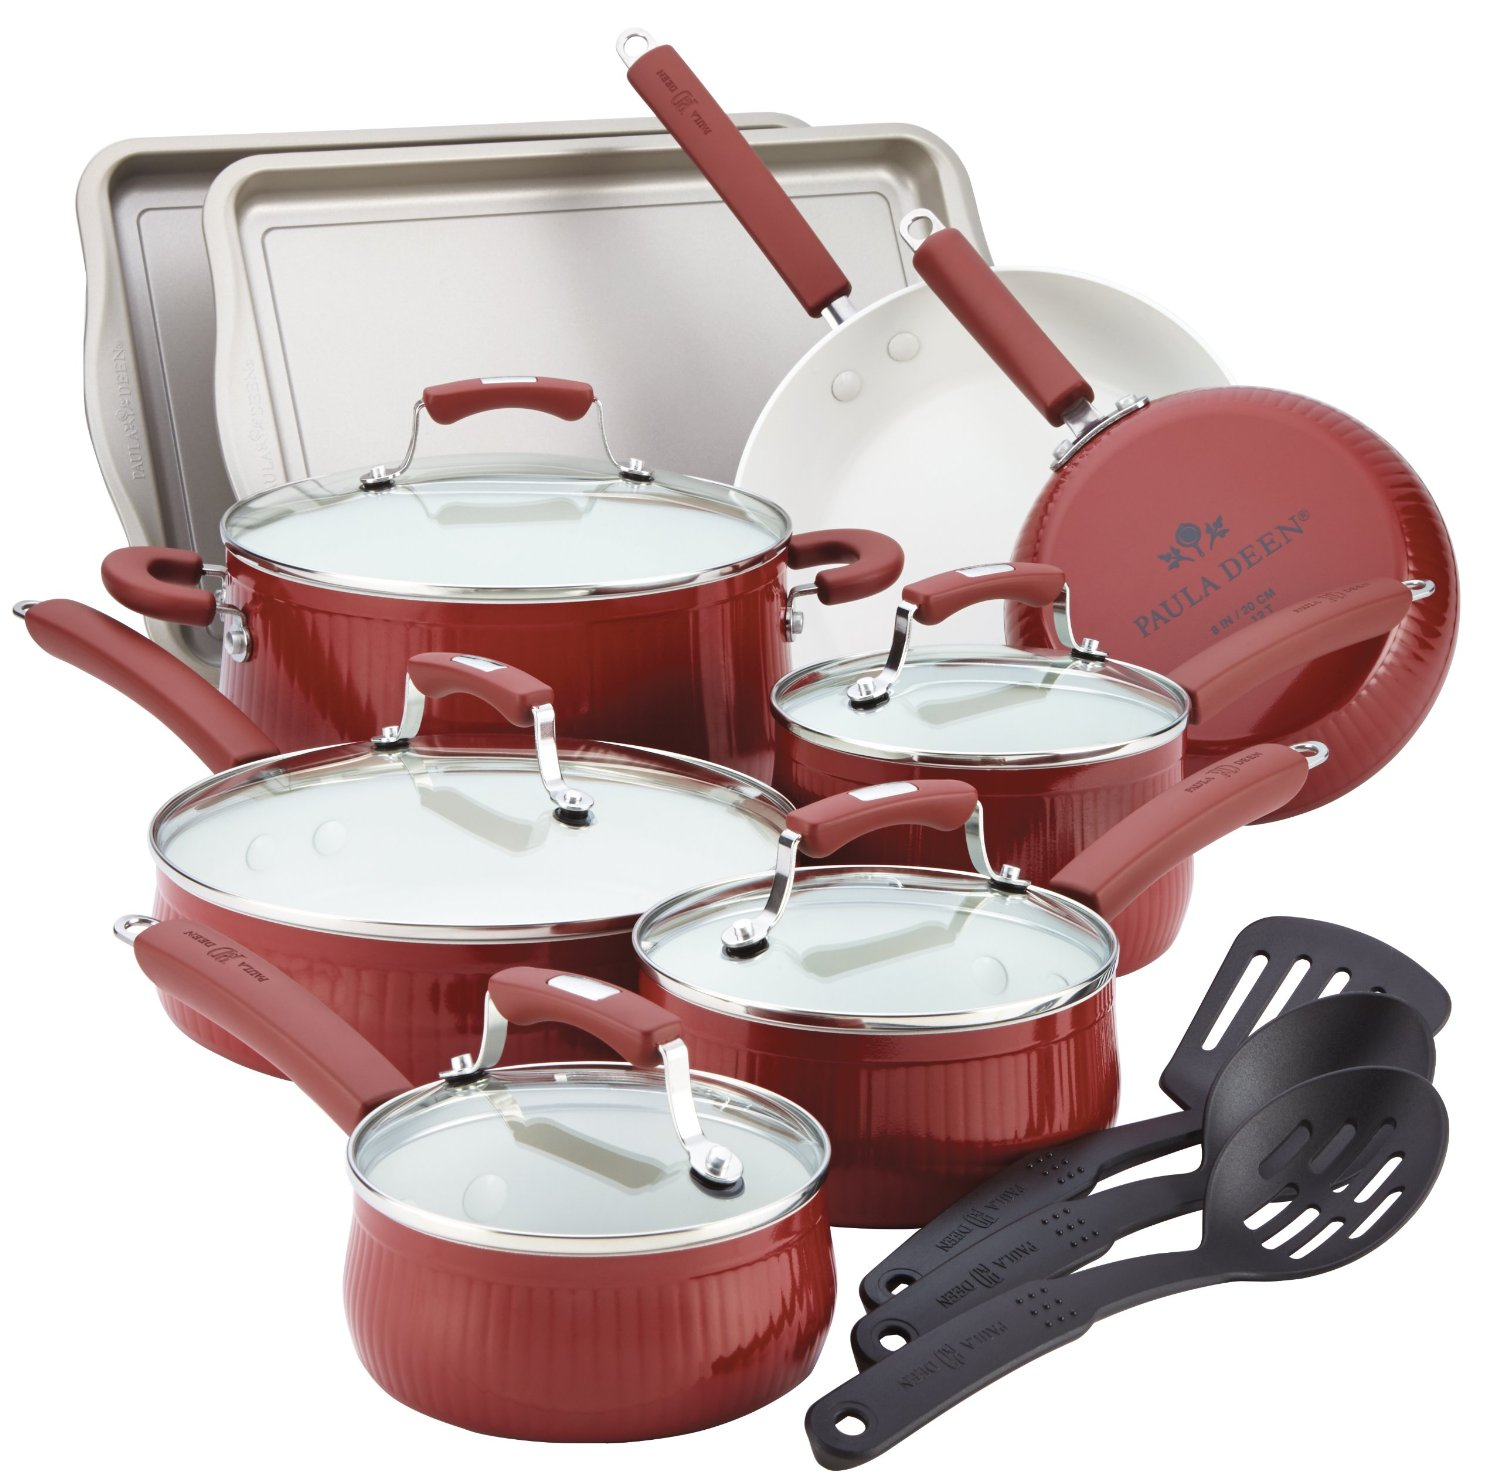 Paula Deen Savannah Cookware Set Review Pros And Cons